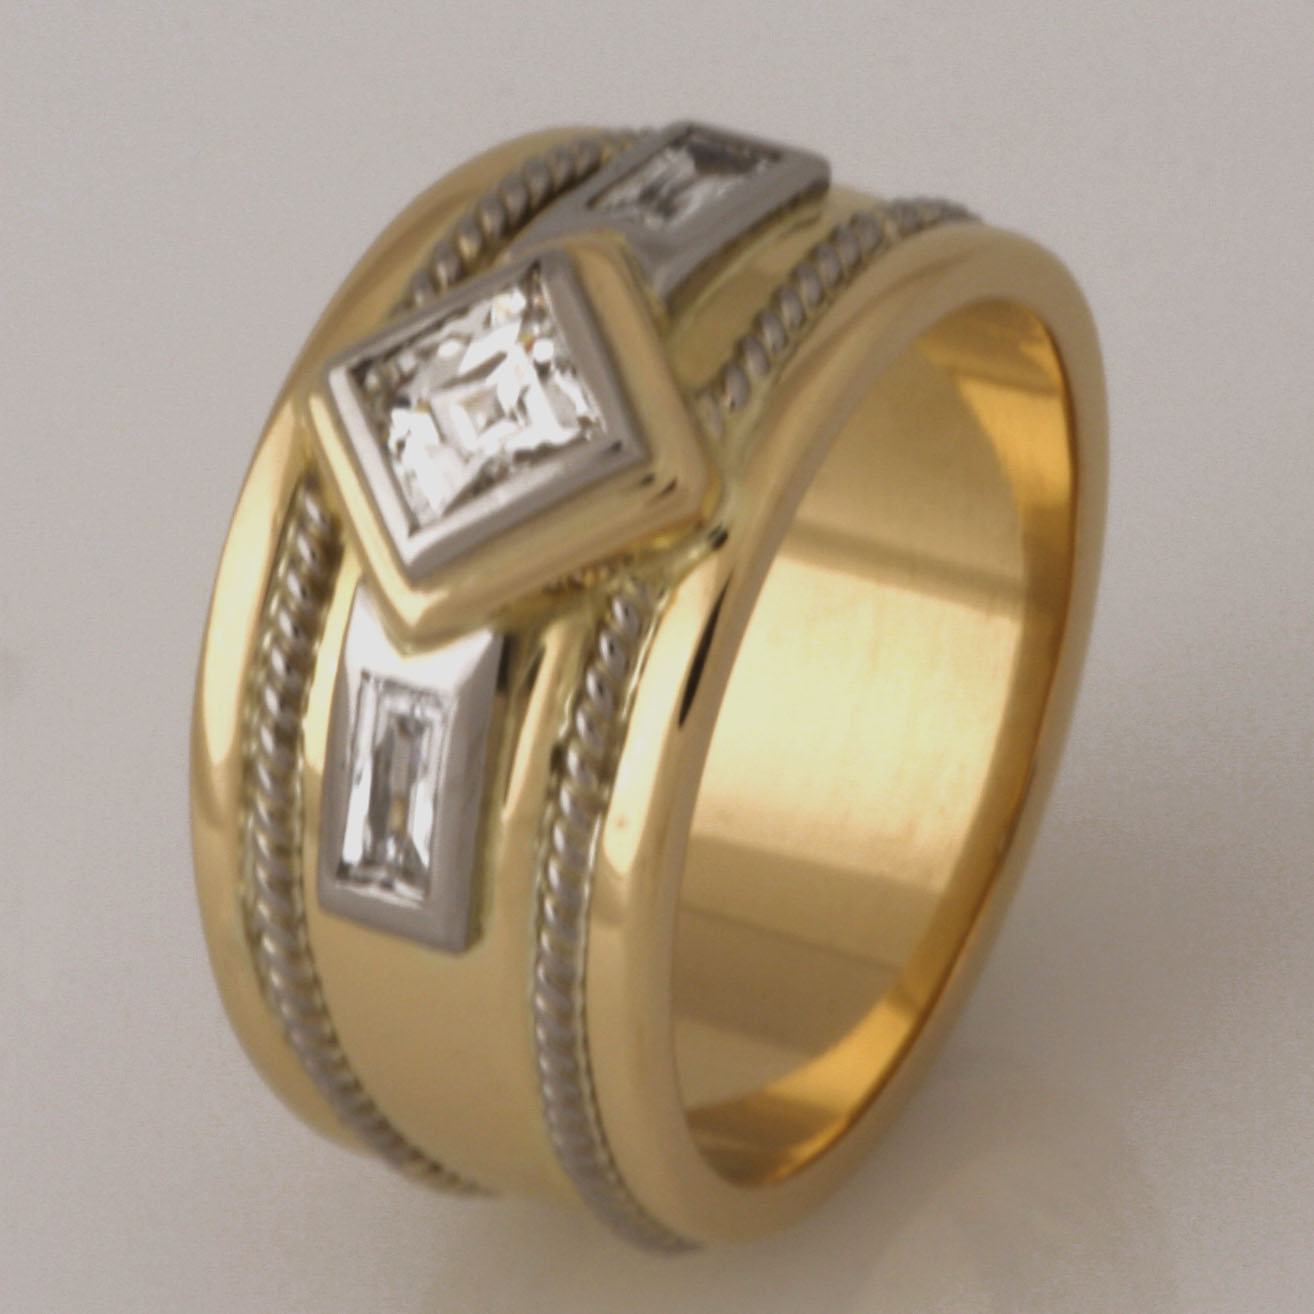 Handmade ladies 18ct white and yellow gold 'Tycoon' cut diamond ring